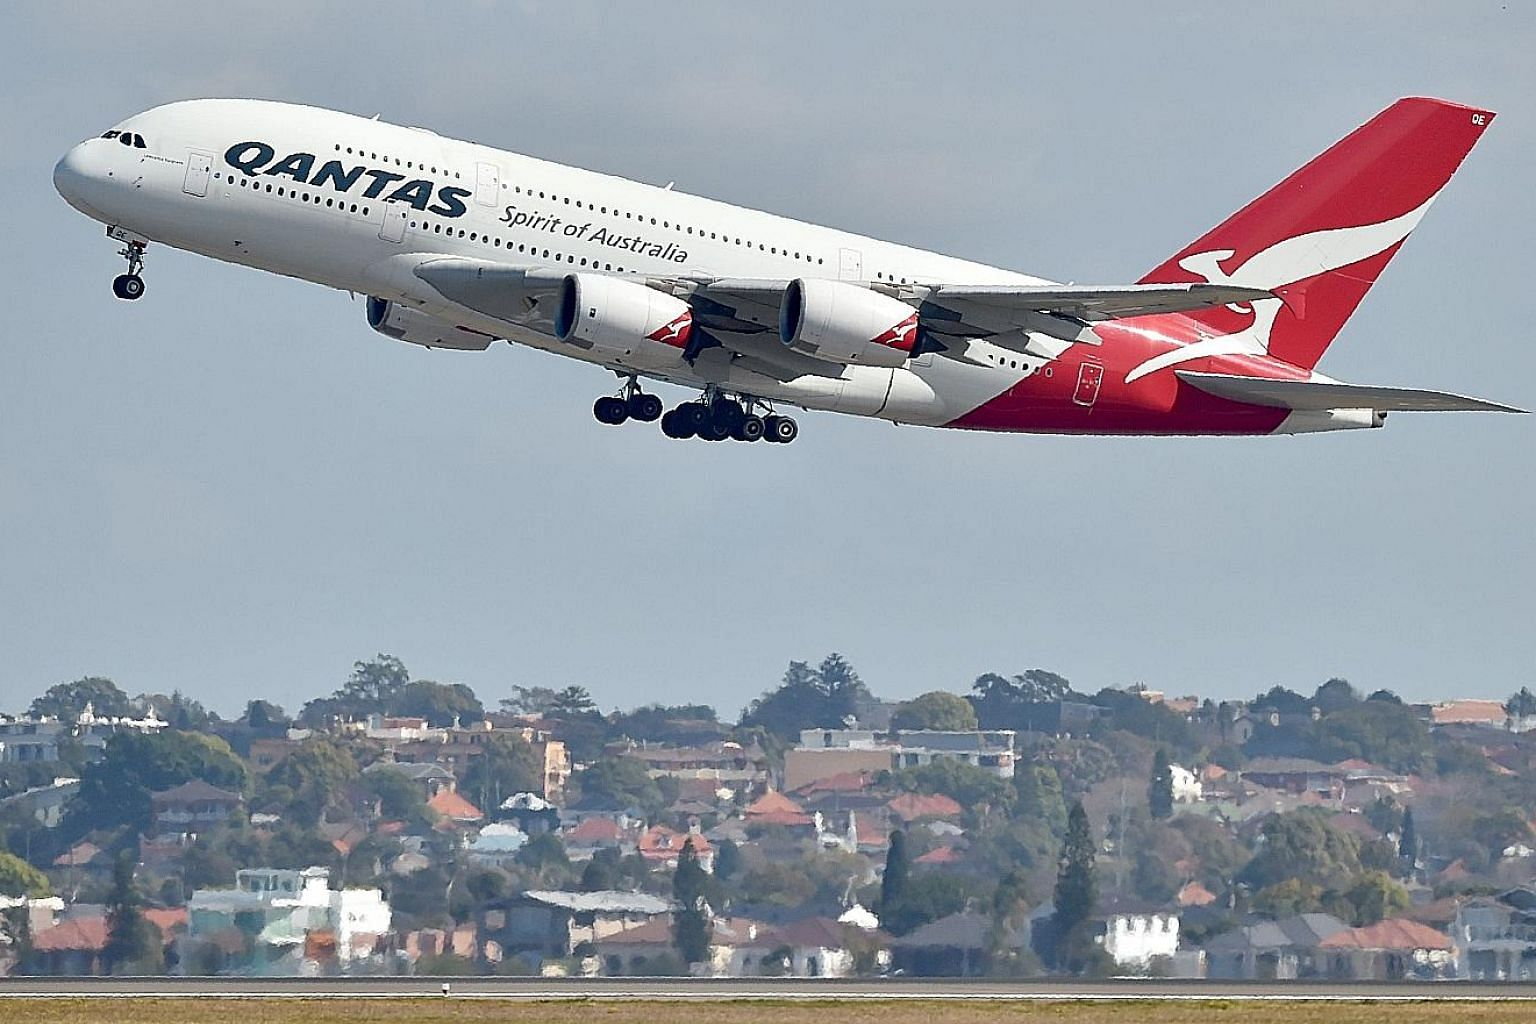 Qantas' cancellation of its order for eight A380 aircraft puts the future of the flagship programme in further doubt. Since entering commercial service a decade back, the A380 has faced an ever-shrinking fan base.